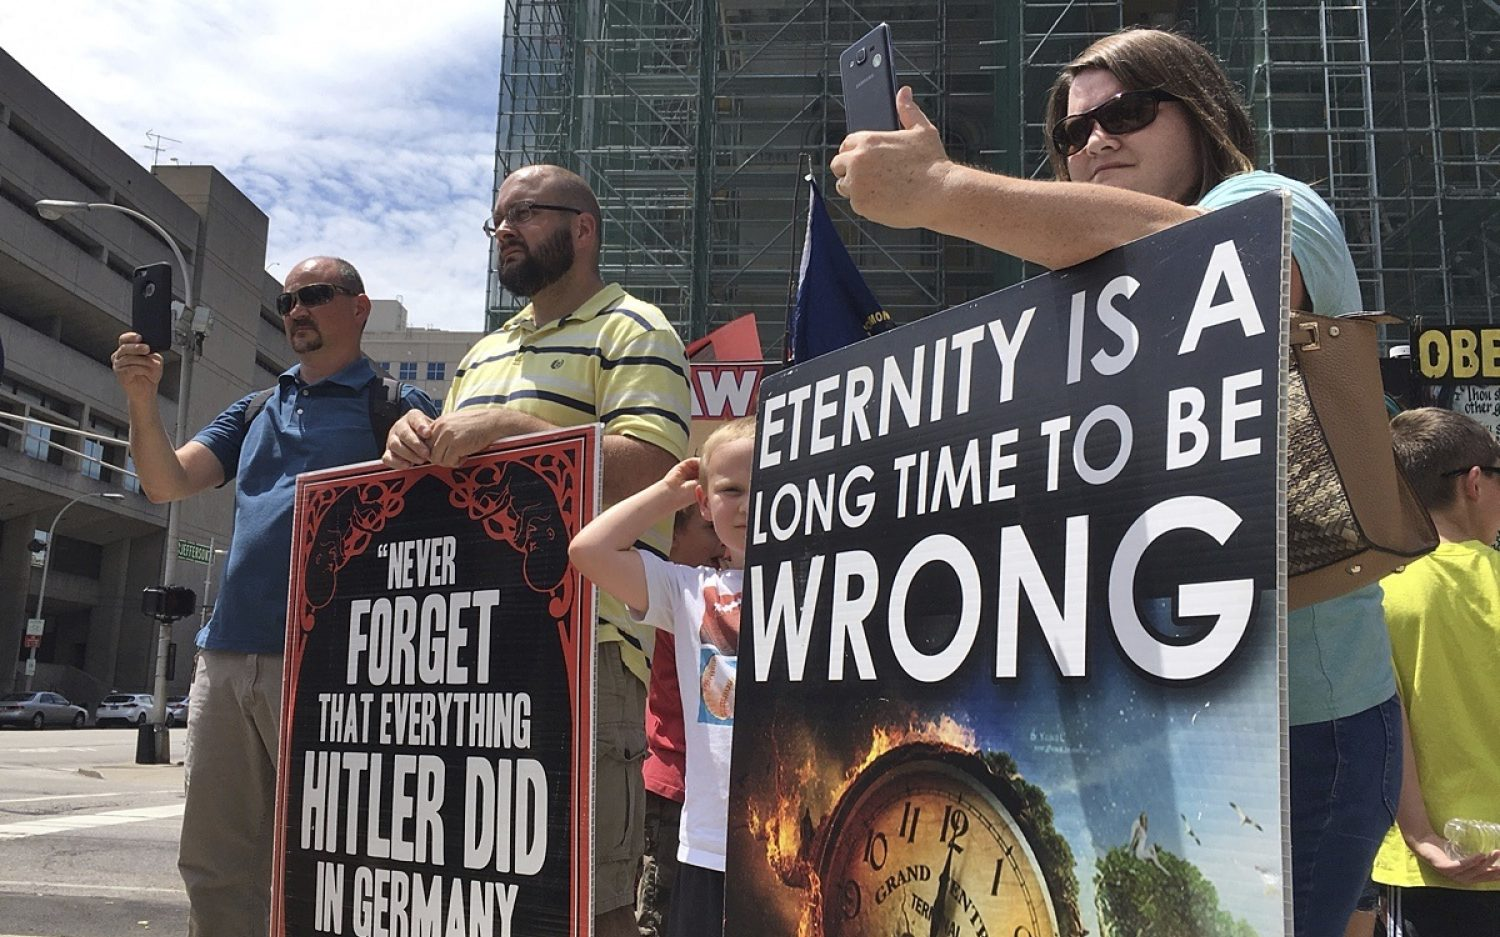 Court bars pro-lifers from abortion center sidewalk